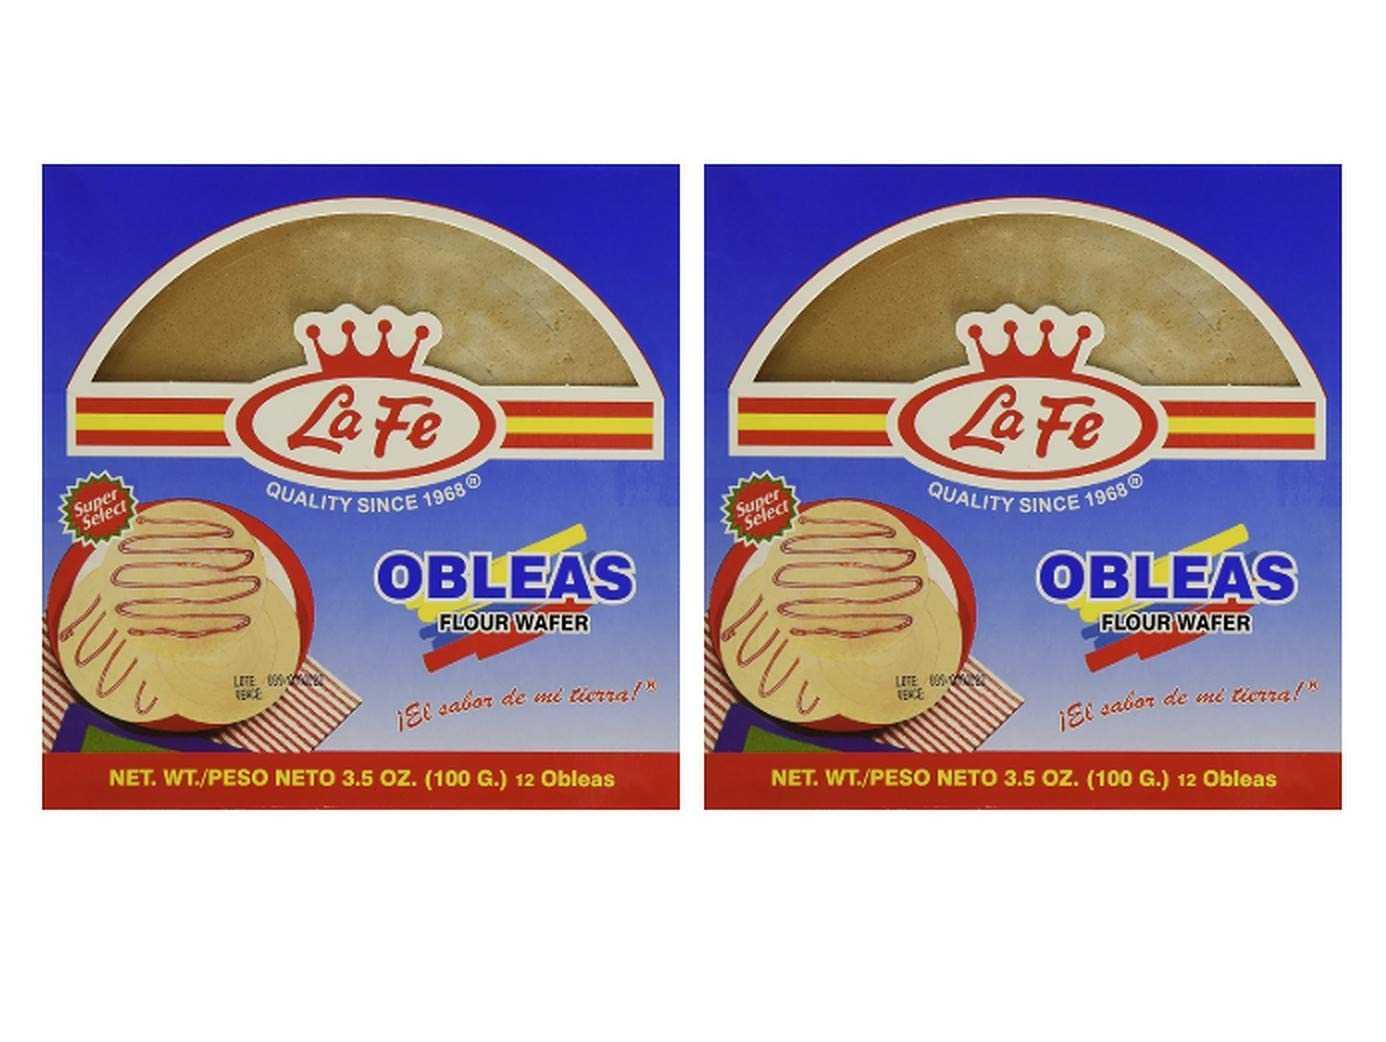 La Fe Obleas - Flour Wafer Delicious Colombian Mexican Venezuelan Snack - Perfect to Spread with Chocolate, Arequipe, Jelly Jam, Caramel - (2 packs, 7.05 oz)